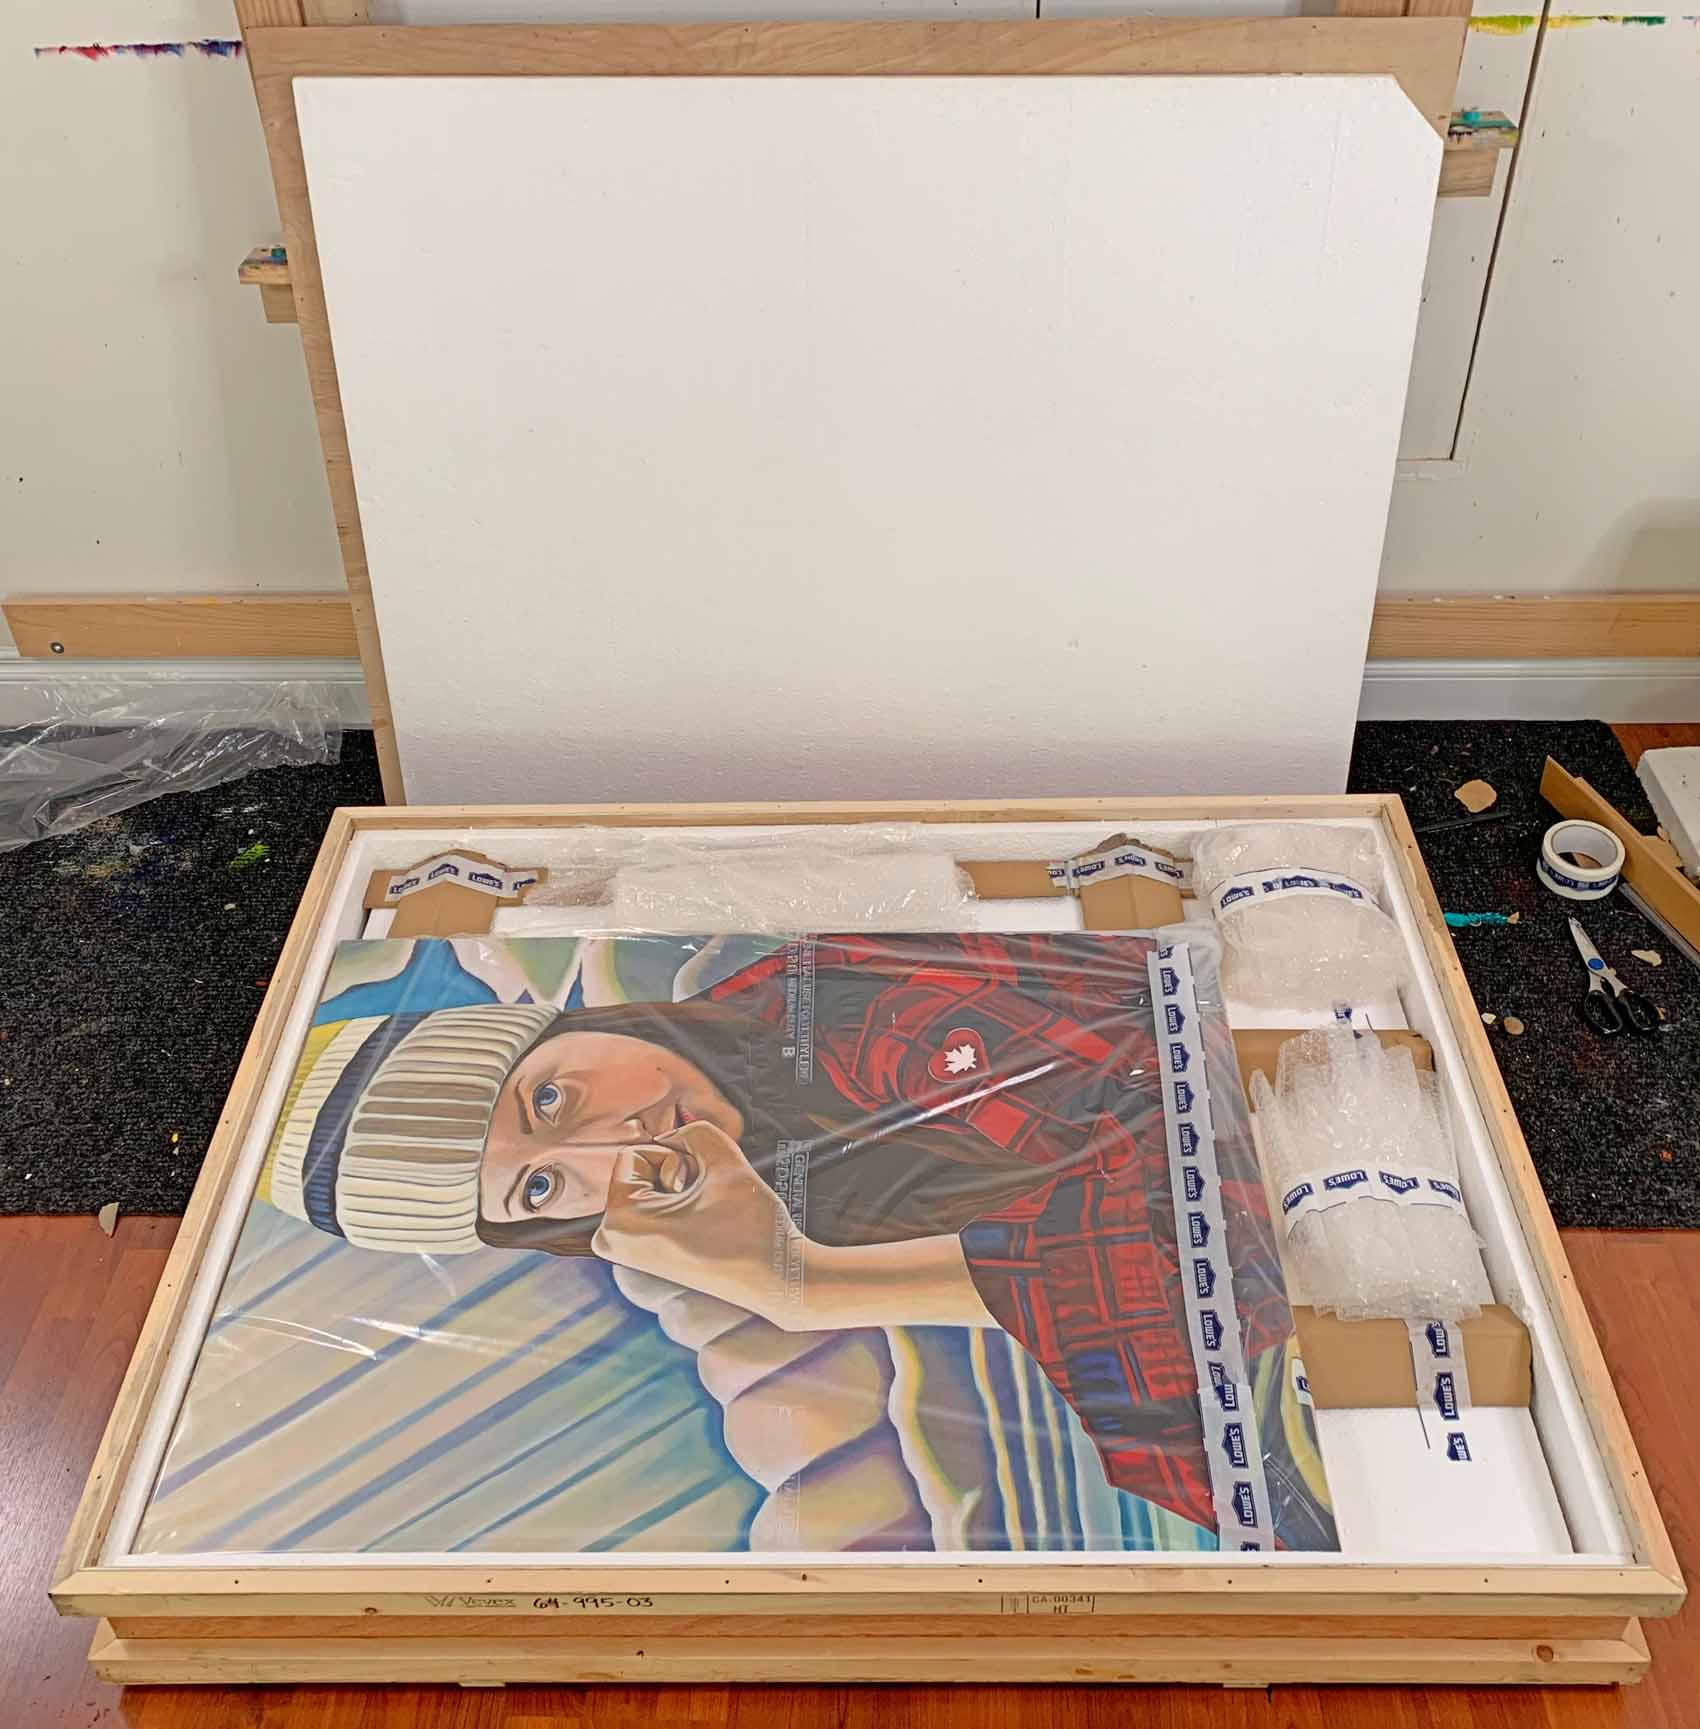 art shipping packing crates with paintings - Brandy Saturley